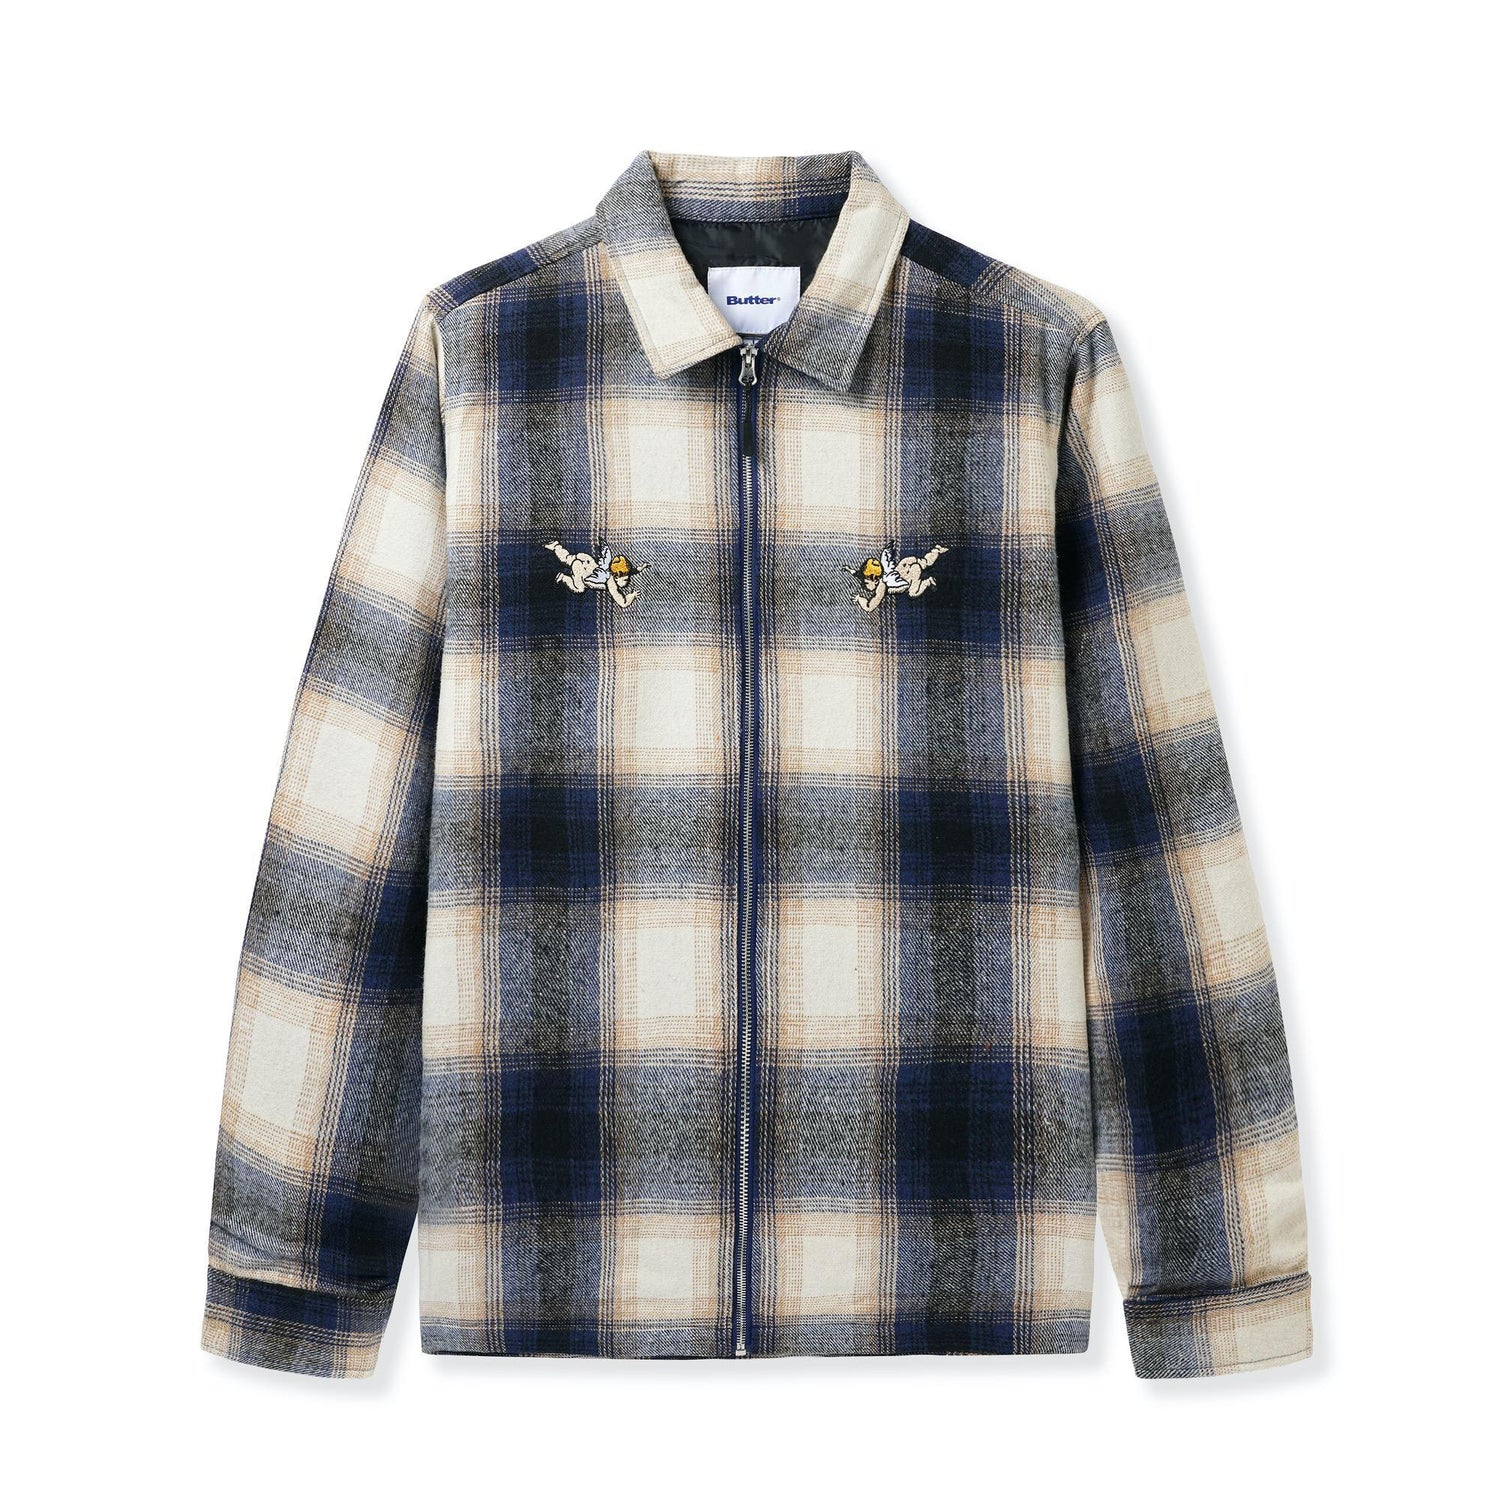 Angels Heavyweight Plaid Overshirt, Navy / Beige